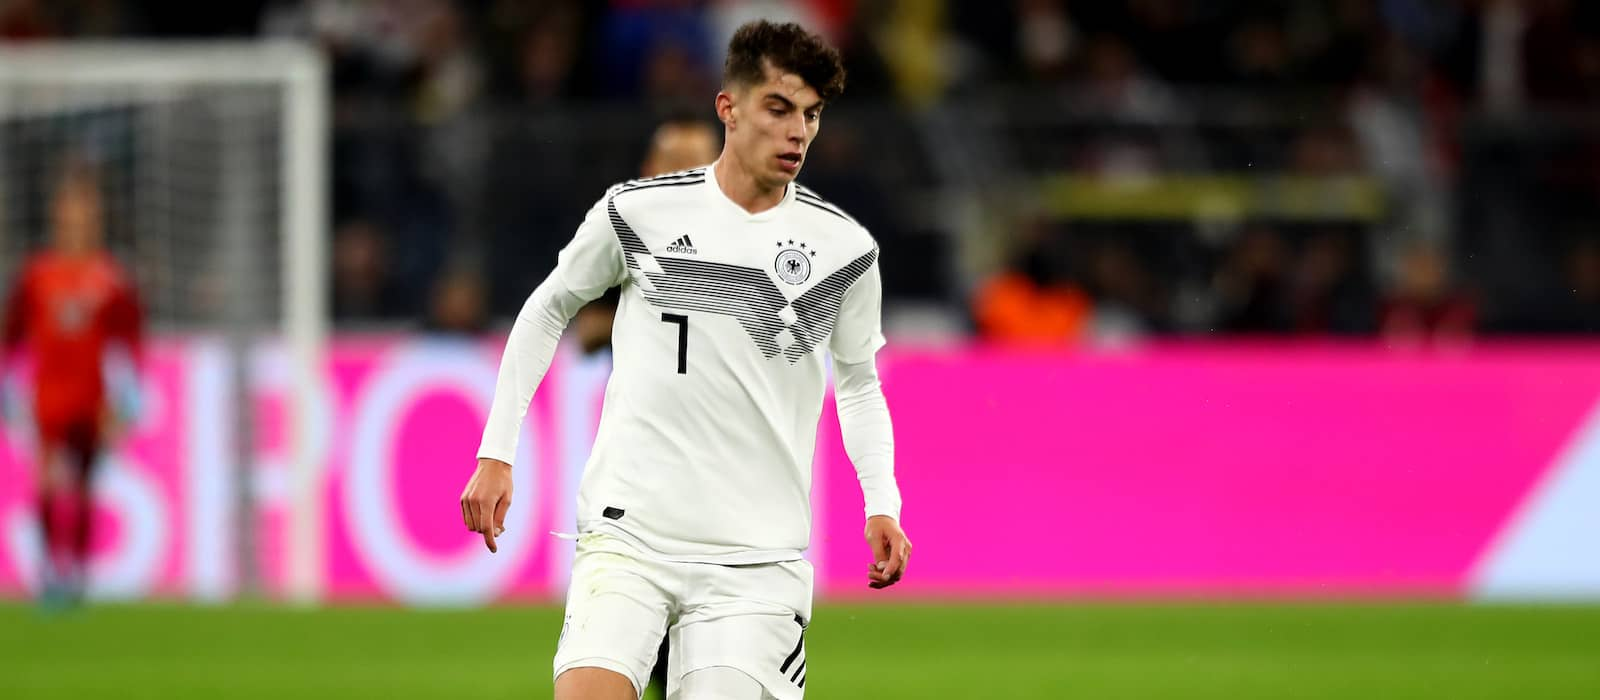 Kai Havertz remains mysterious over future amid Manchester United links